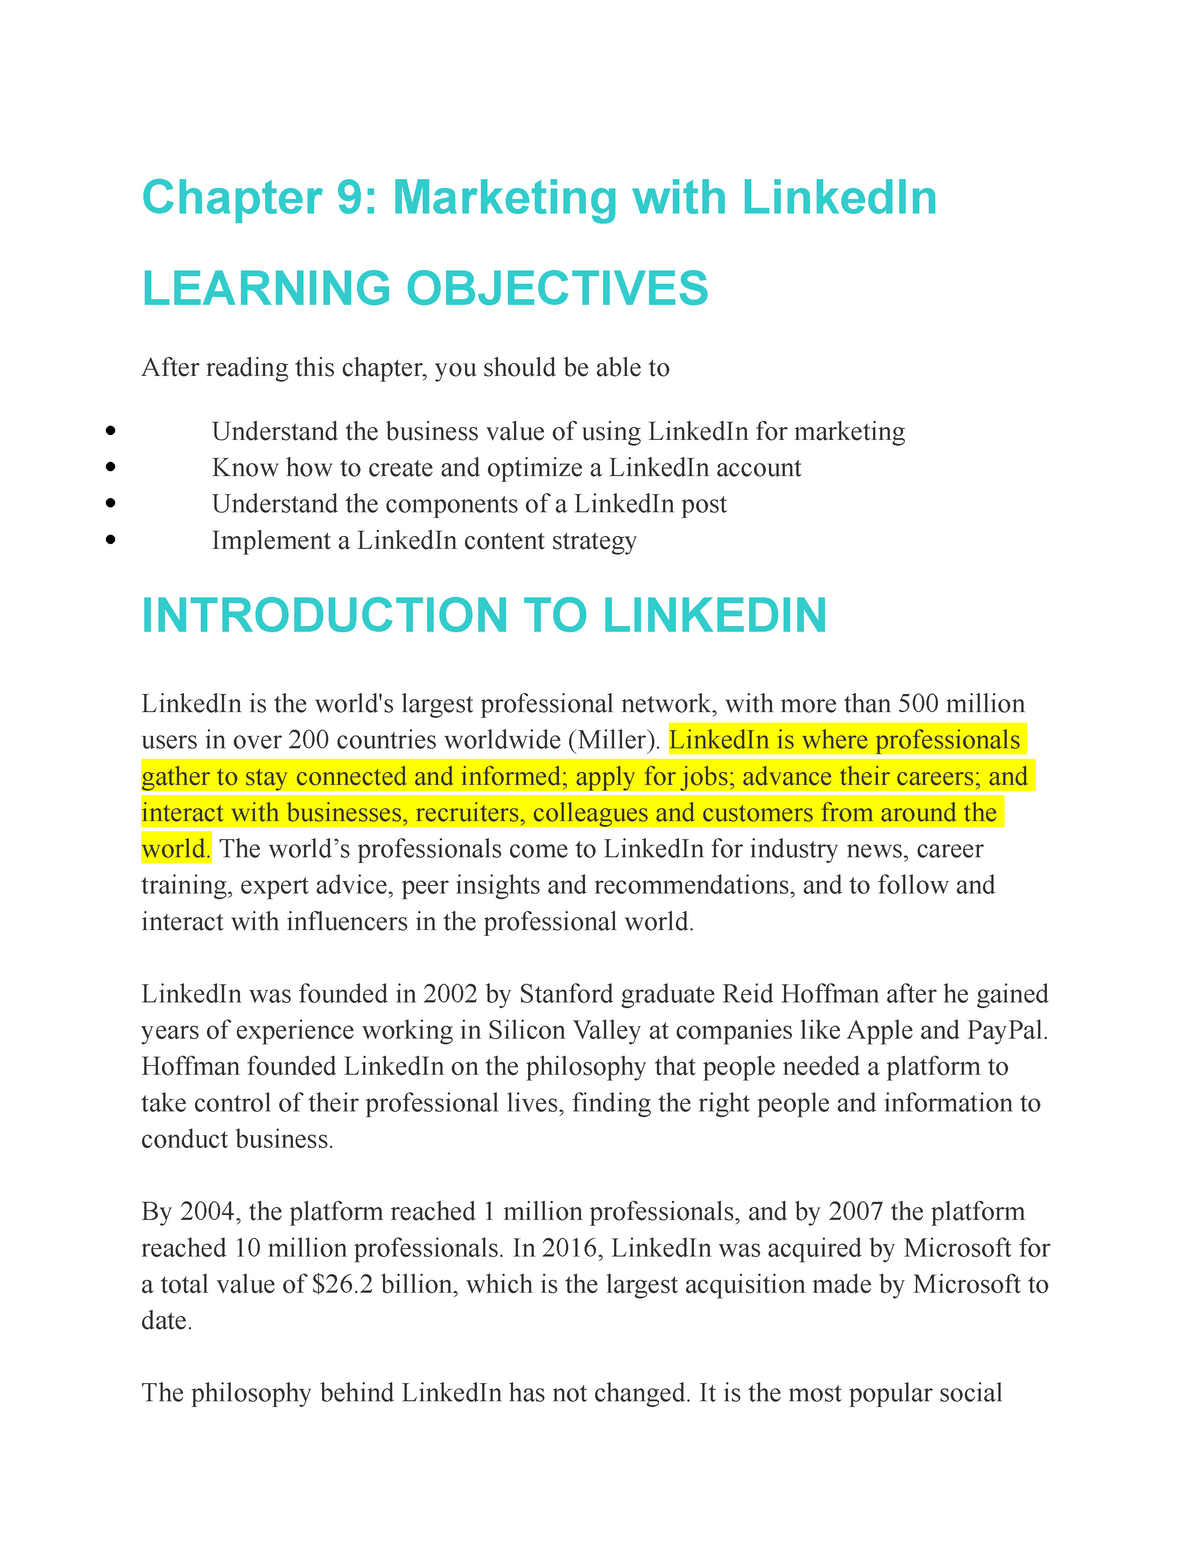 Chapter 9 - Marketing with Linked In - MKT 3320 : Social